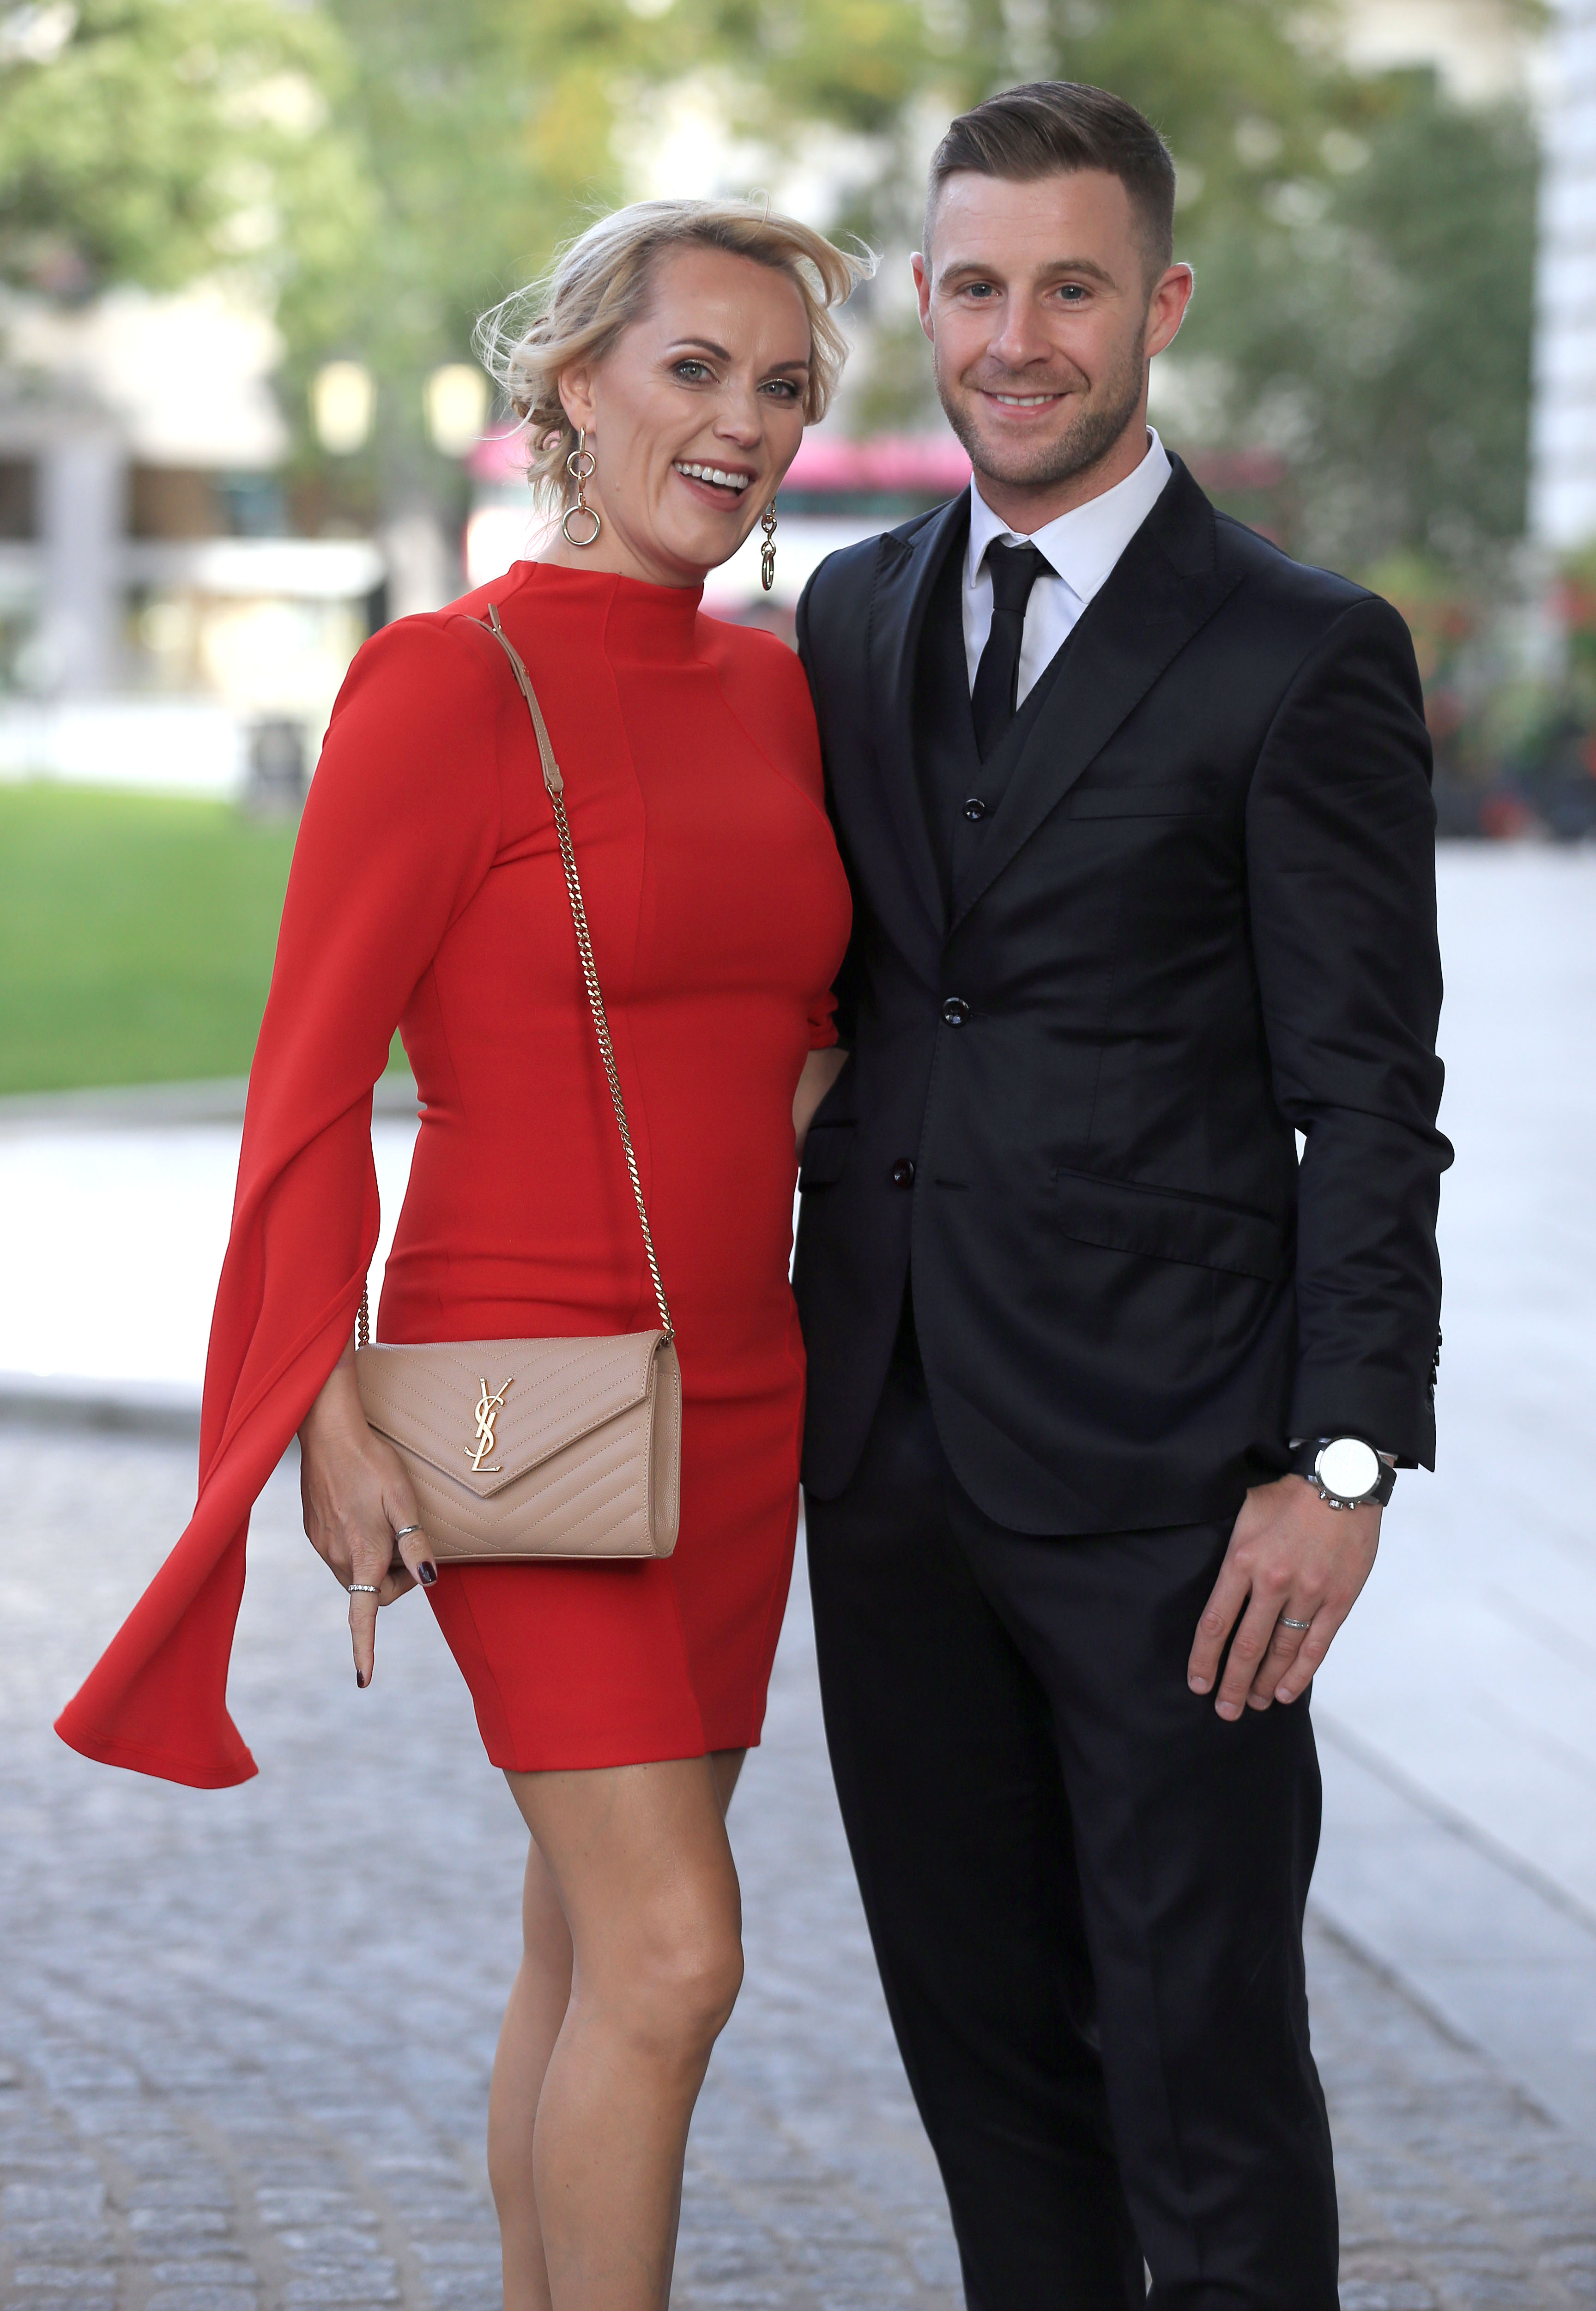 PACEMAKER, BELFAST, 6/9/2018: Jonathan Rea and his wife Tatia, arrive at the glittering Ulster Tatler Awards in Belfast City Hall tonight. Jonathan was the winner of the prestigious Sportsperson of the Year award. Northern IrelandÕs longest-running glossy magazine, Ulster Tatler, is celebrating over 50 years on the shelves of NI, and its eleventh annual awards recognise the people and businesses of Northern Ireland that have lit up its pages since 1966. PICTURE BY STEPHEN DAVISON